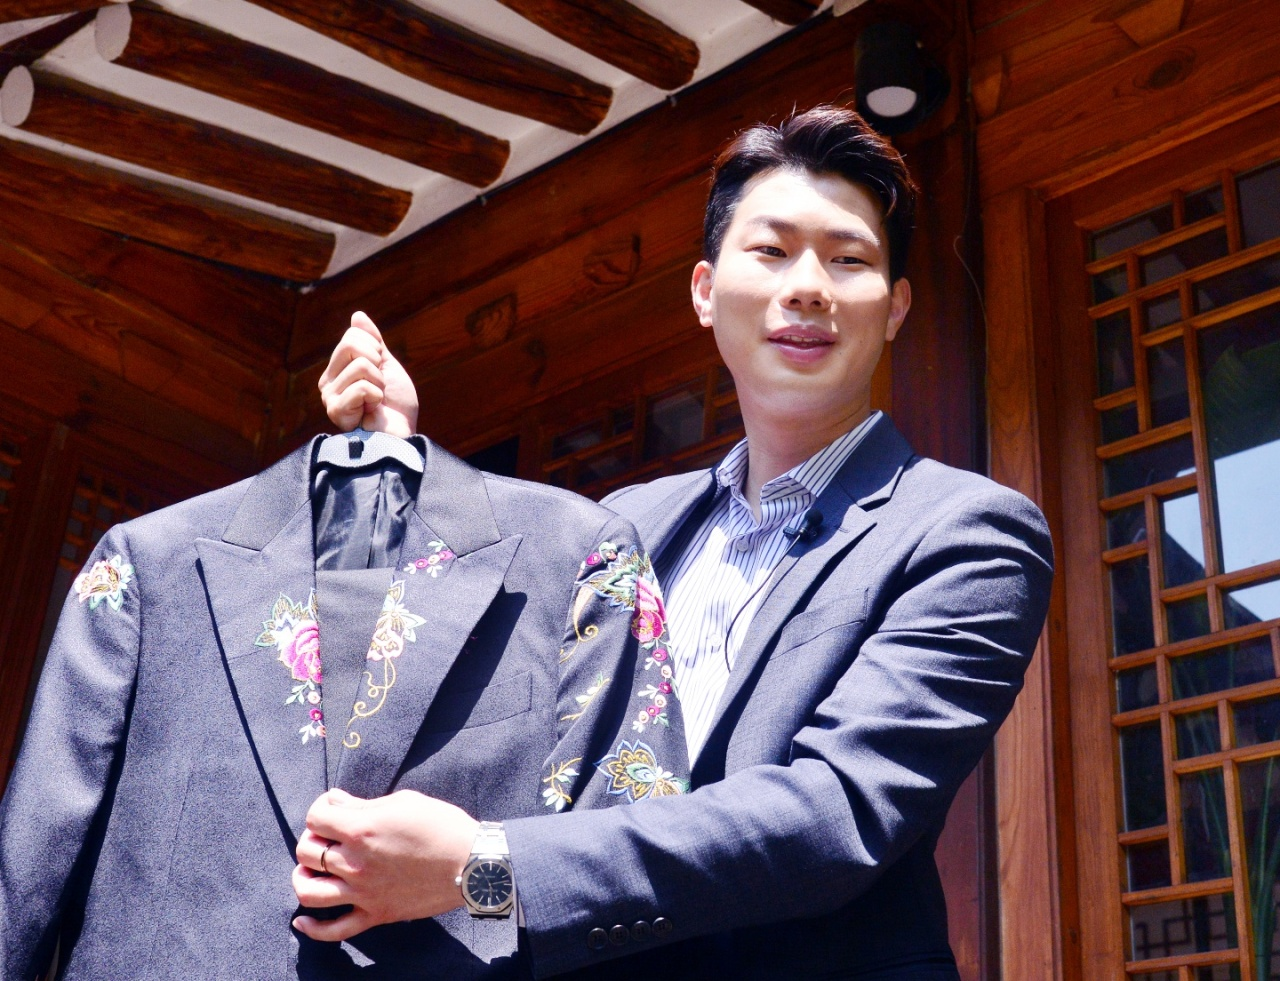 Designer Kim Ri-eul poses with one of his hanbok suits during an interview with The Korea Herald in Seoul. (Park Hyun-koo/The Korea Herald)